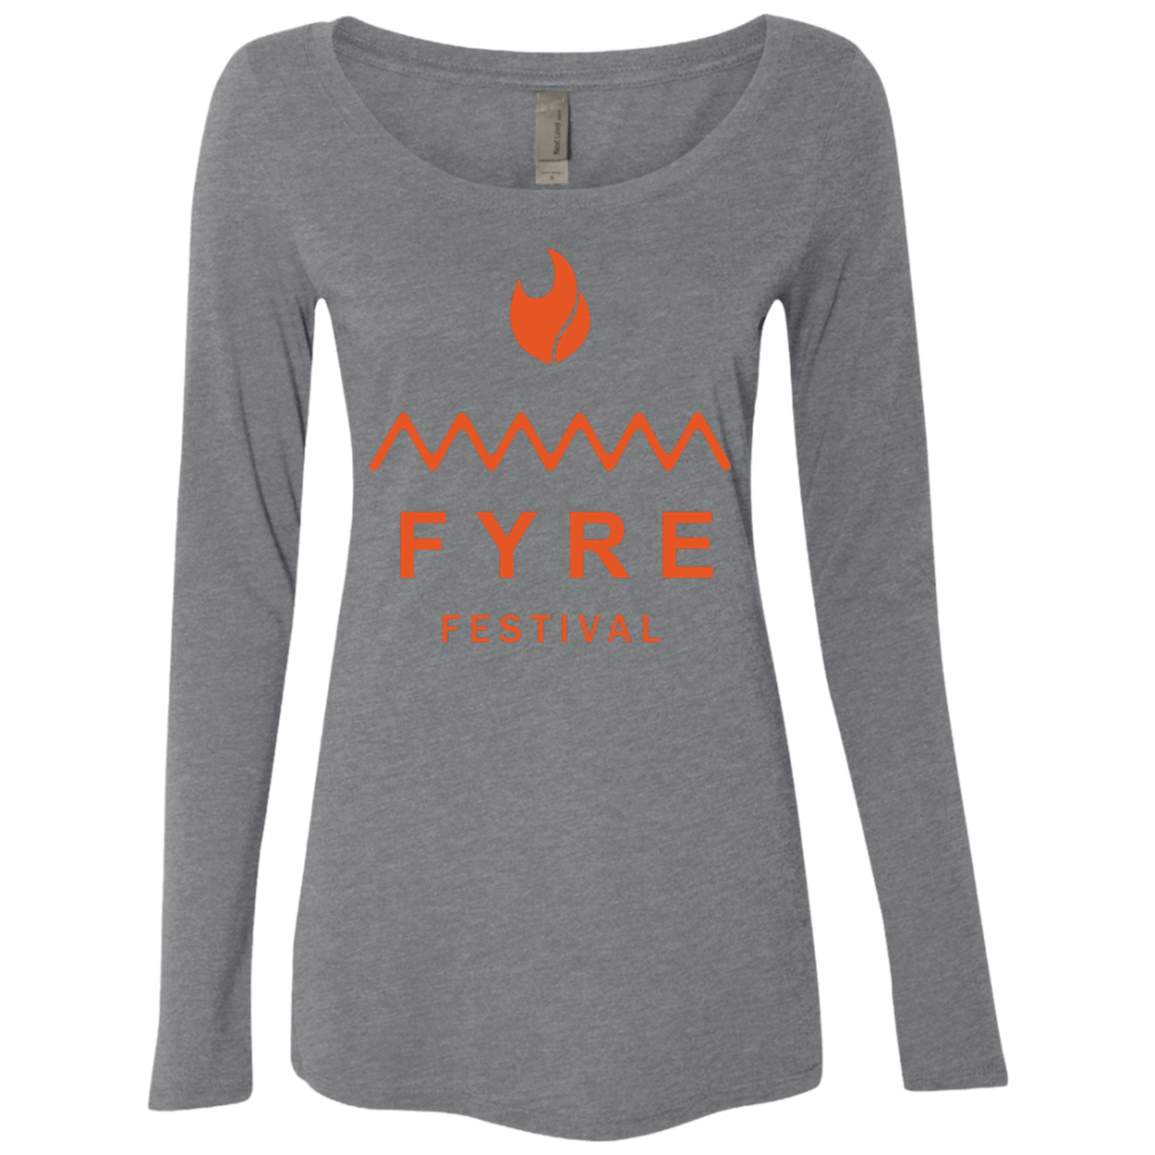 Fyre Festival was Lit Orange Women's Long Sleeve Tee - Trendy Tees